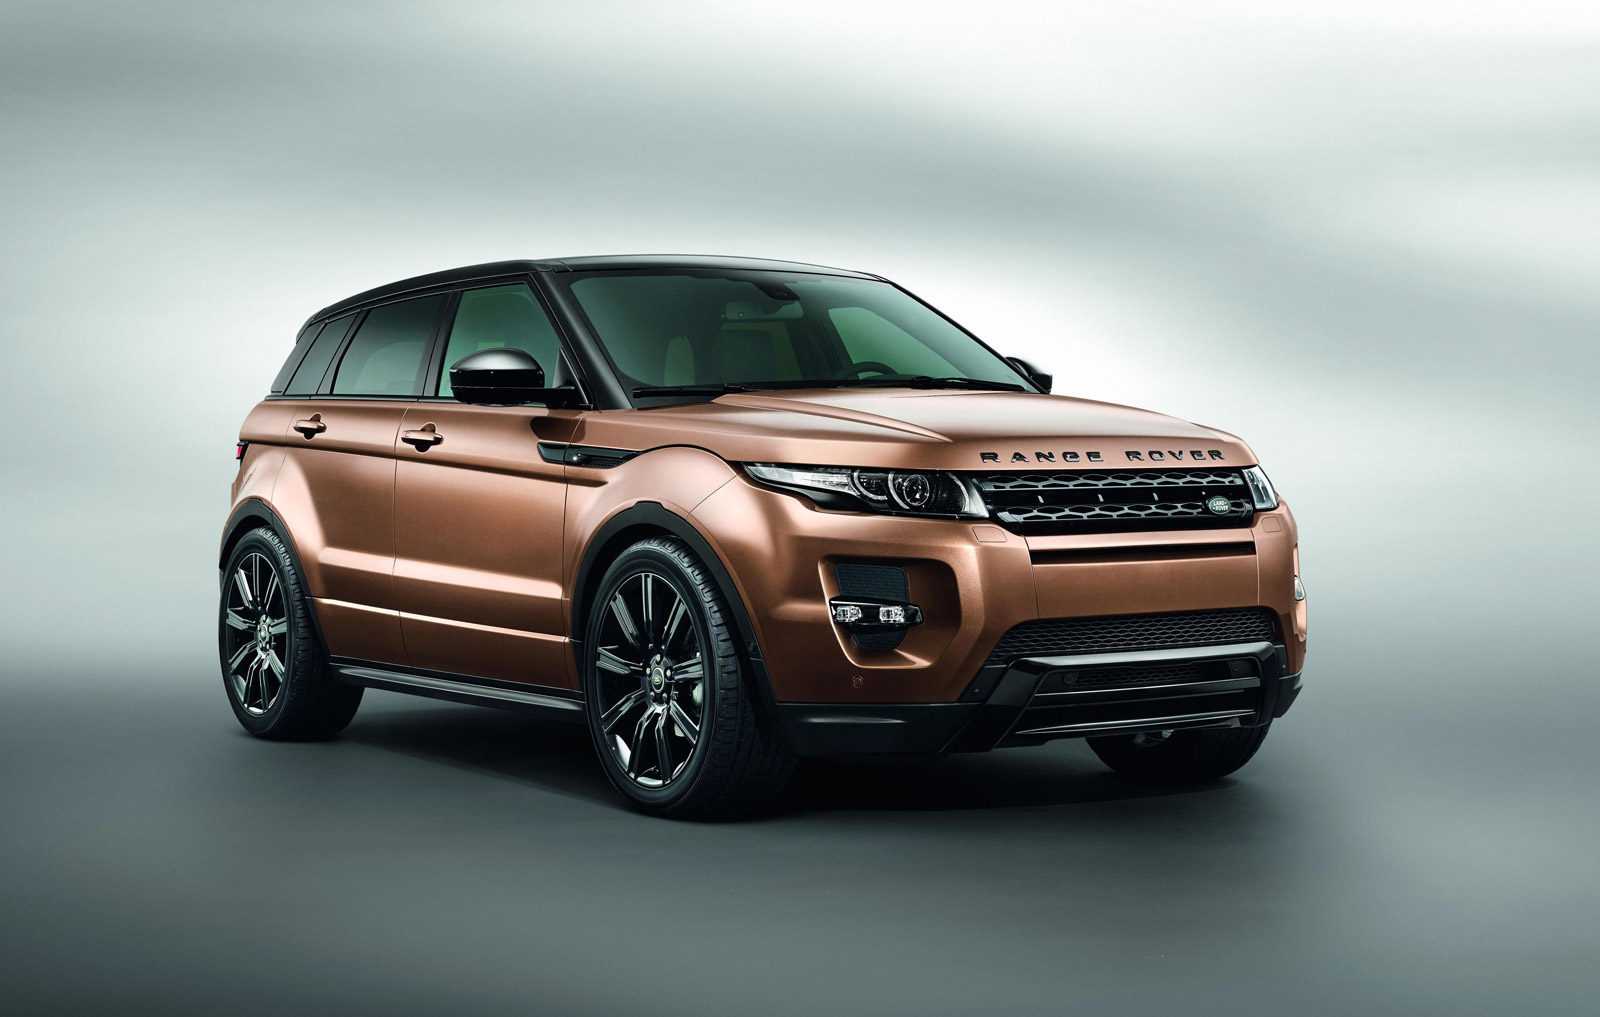 cars range cheshire used sale in land chester pure landrover rover uk plus motors for evoque co local